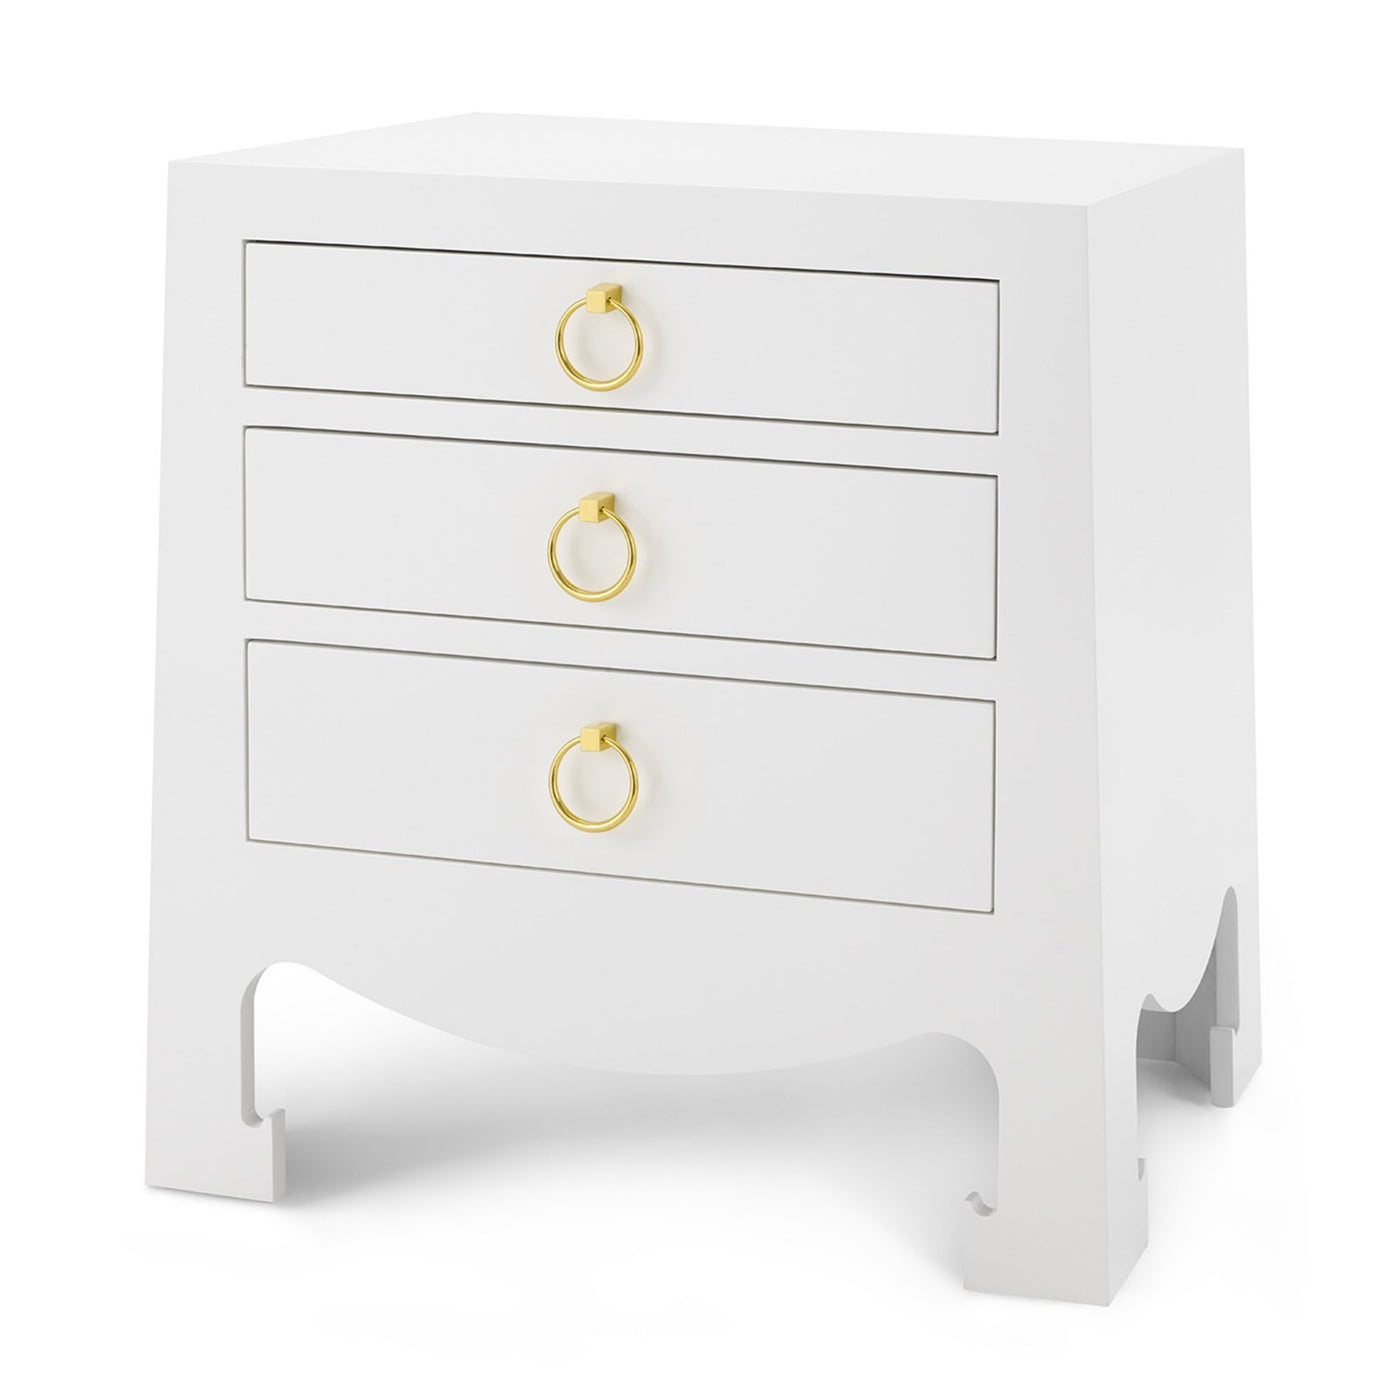 Bungalow 5 Jacqui 3 Drawer Side Table White JAC-130-09 Angle bed side table, bedroom side table, modern side table, white side table